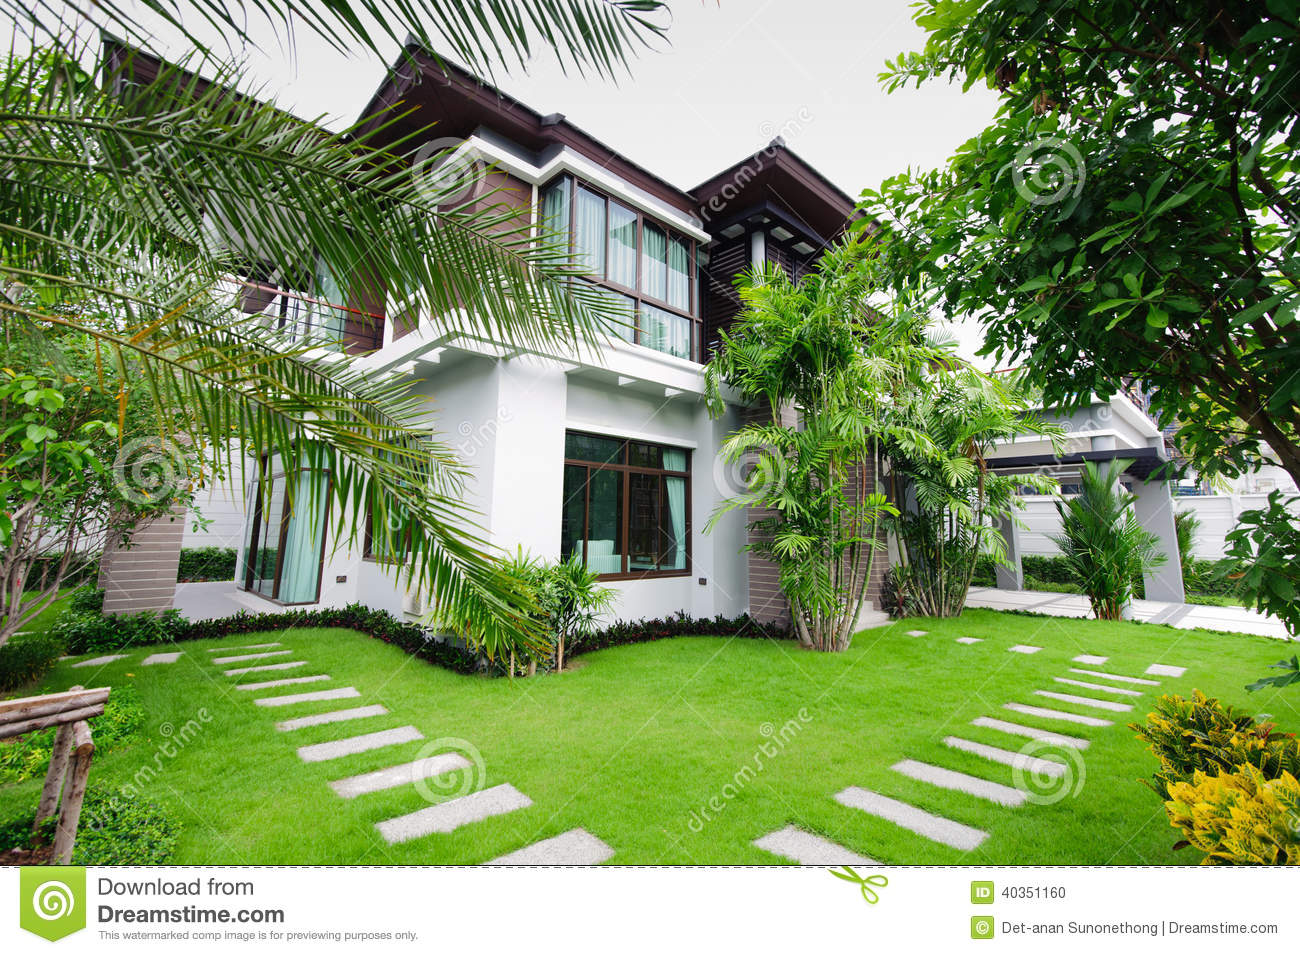 Maison moderne dans le jardin photo stock image 40351160 for Grand jardin en friche